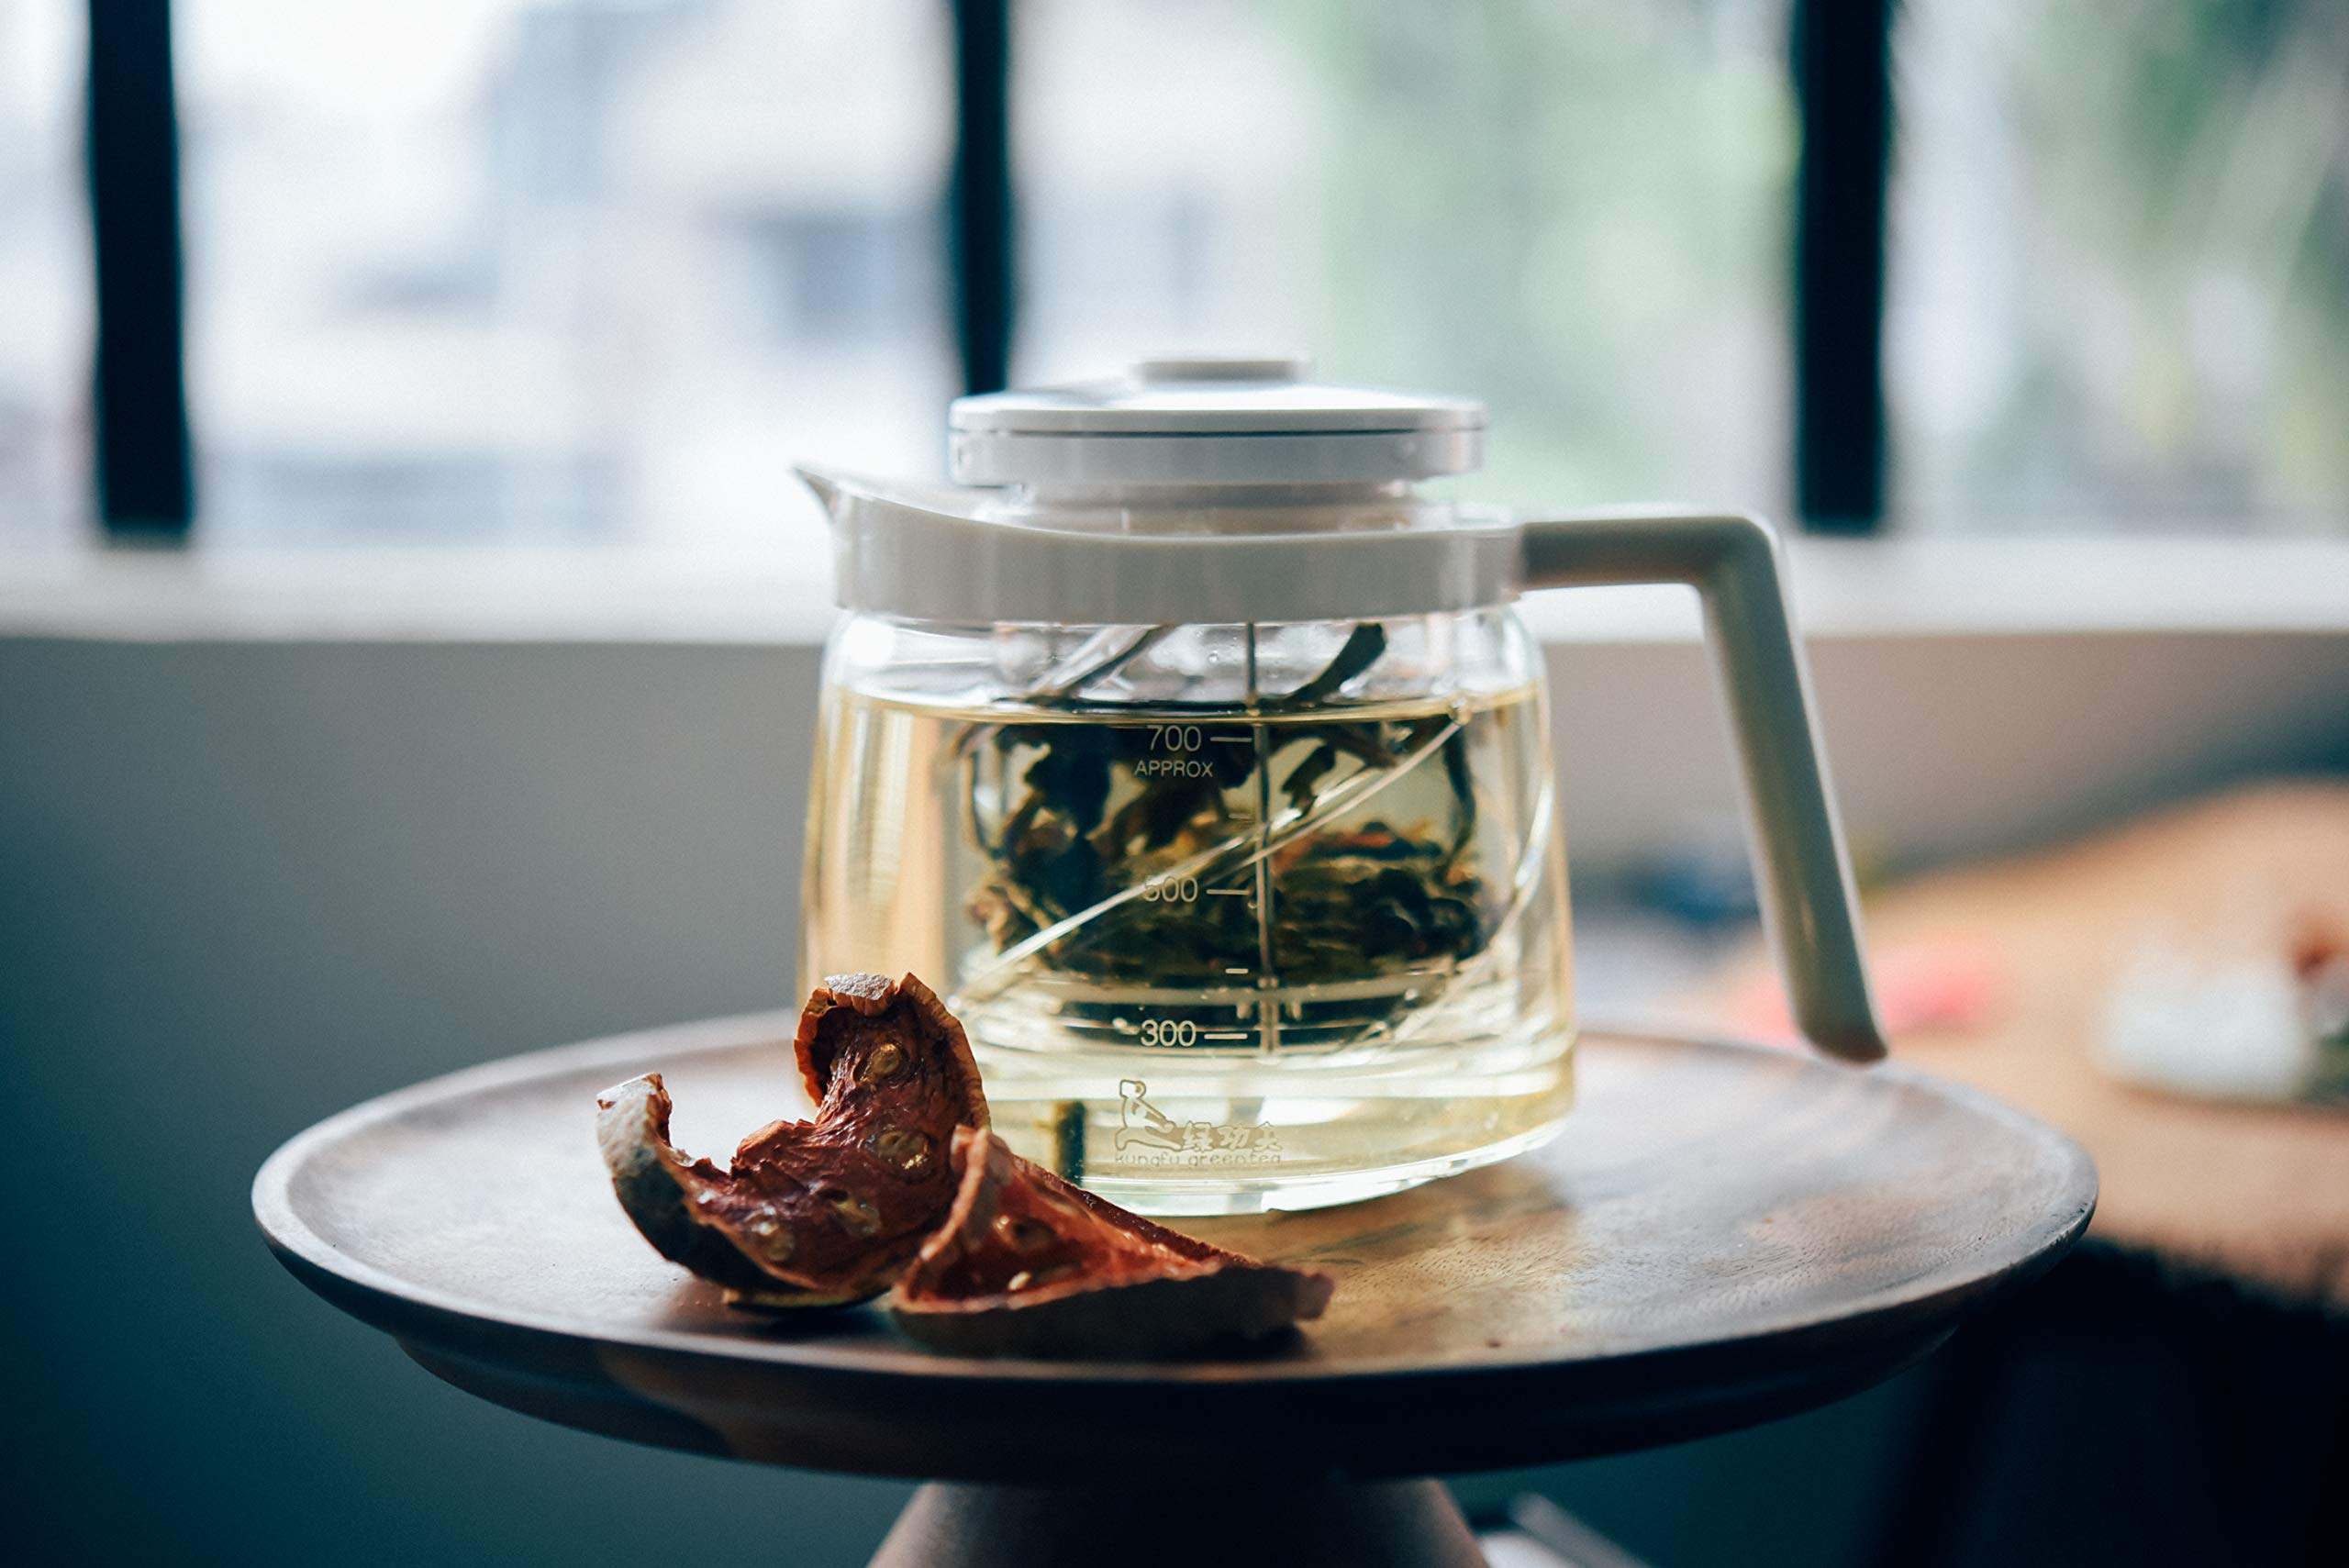 Glass Tea Pot and Infuser Set - Infusers Holds 4-5 Cups Loose Leaf Herb Tea Filter Container - Kettles Teapots Tea Strainer Steeper